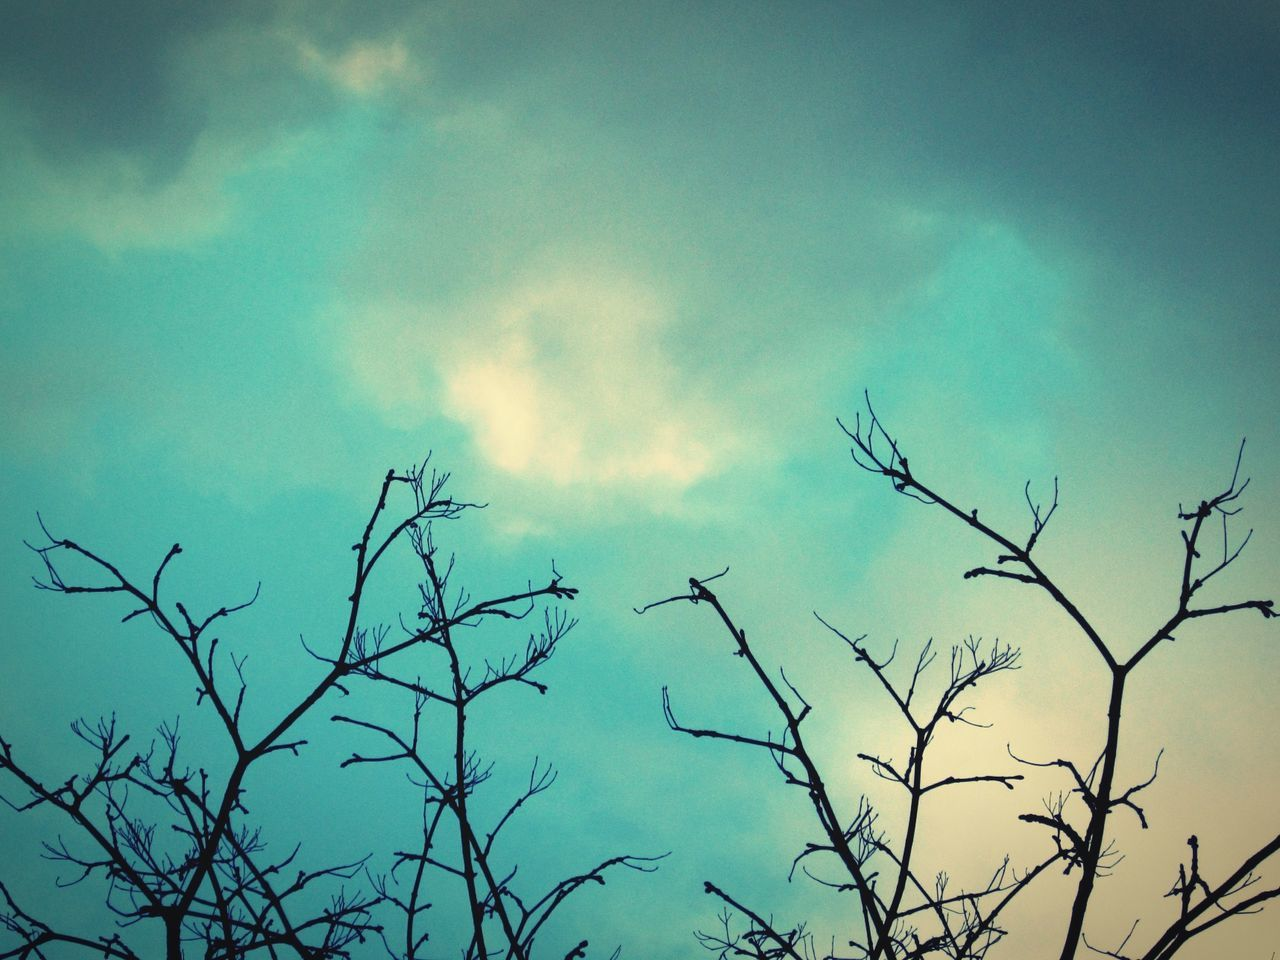 nature, beauty in nature, low angle view, sky, no people, silhouette, branch, outdoors, bare tree, day, plant, tree